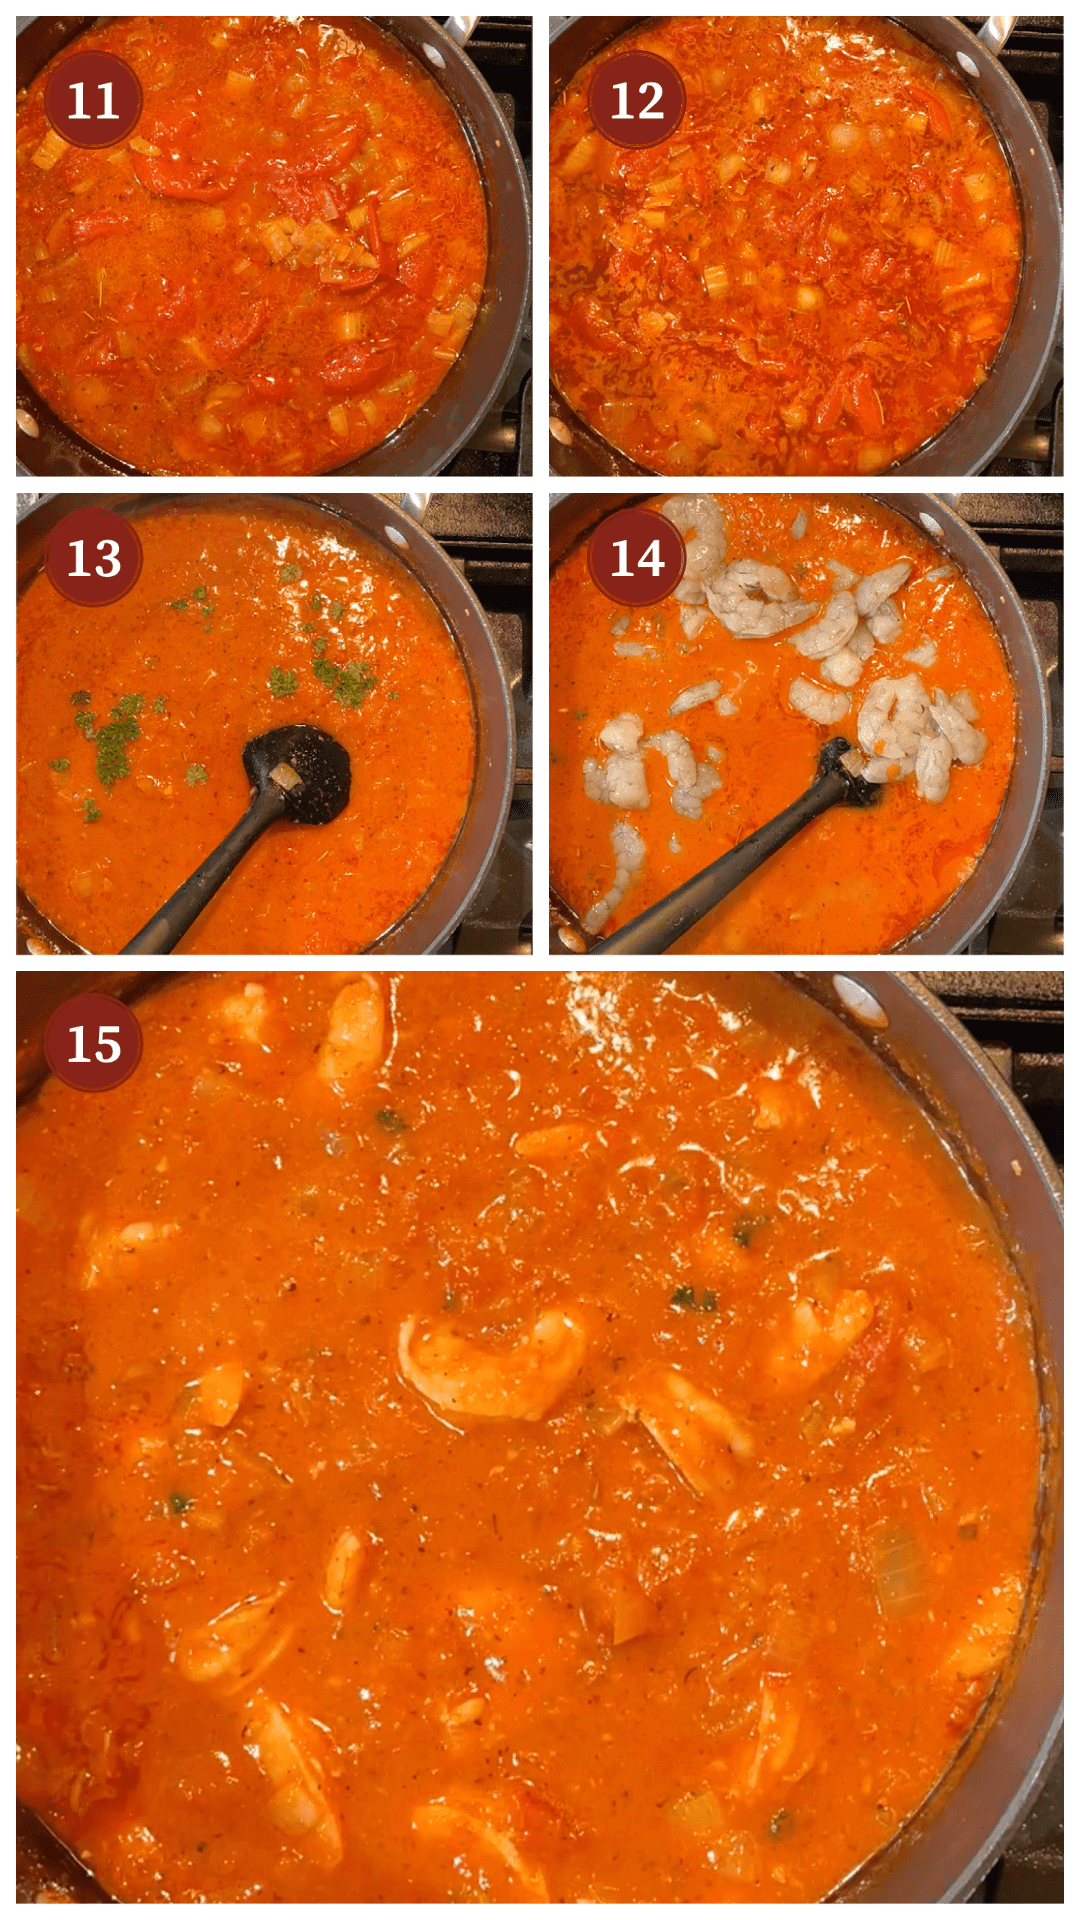 A collage of images showing how to make shrimp creole, steps 11 - 1 q5.